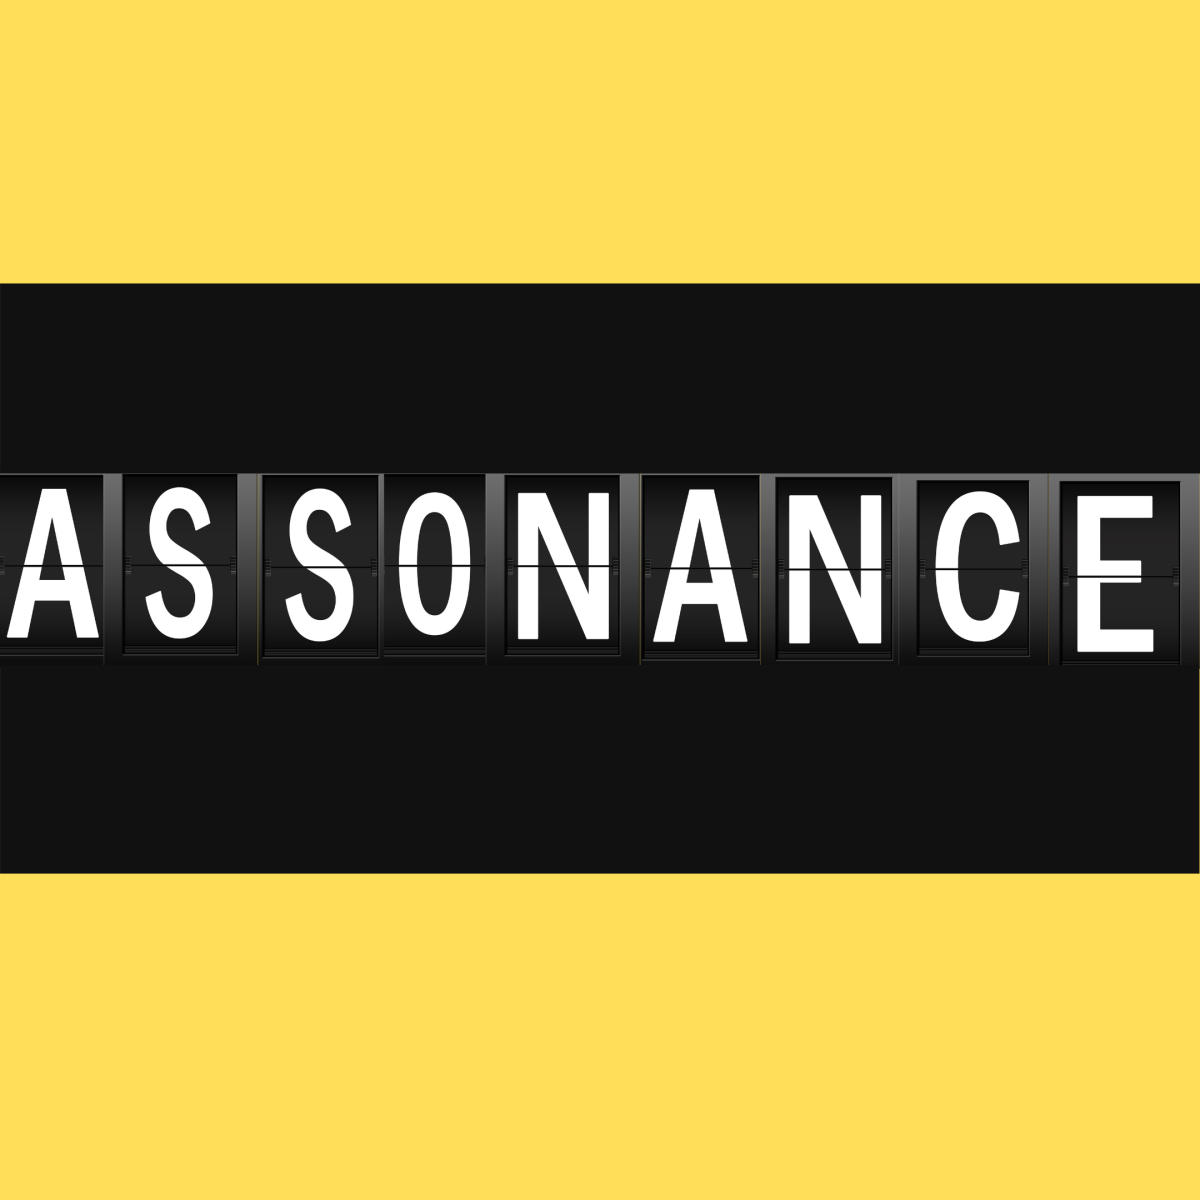 step-by-step-guide-to-poetic-assonance